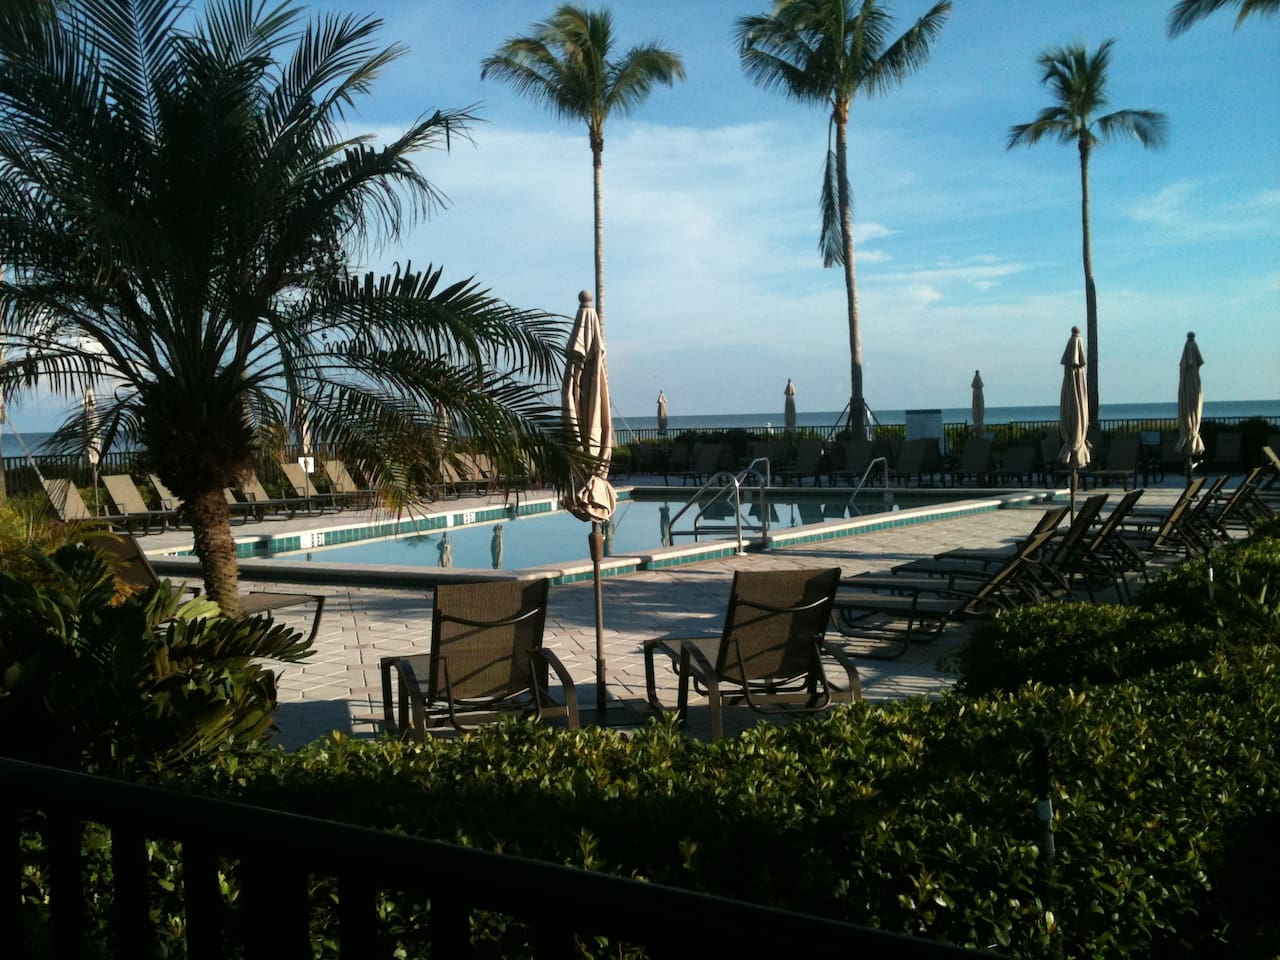 A beautiful pool by the Gulf of Mexico